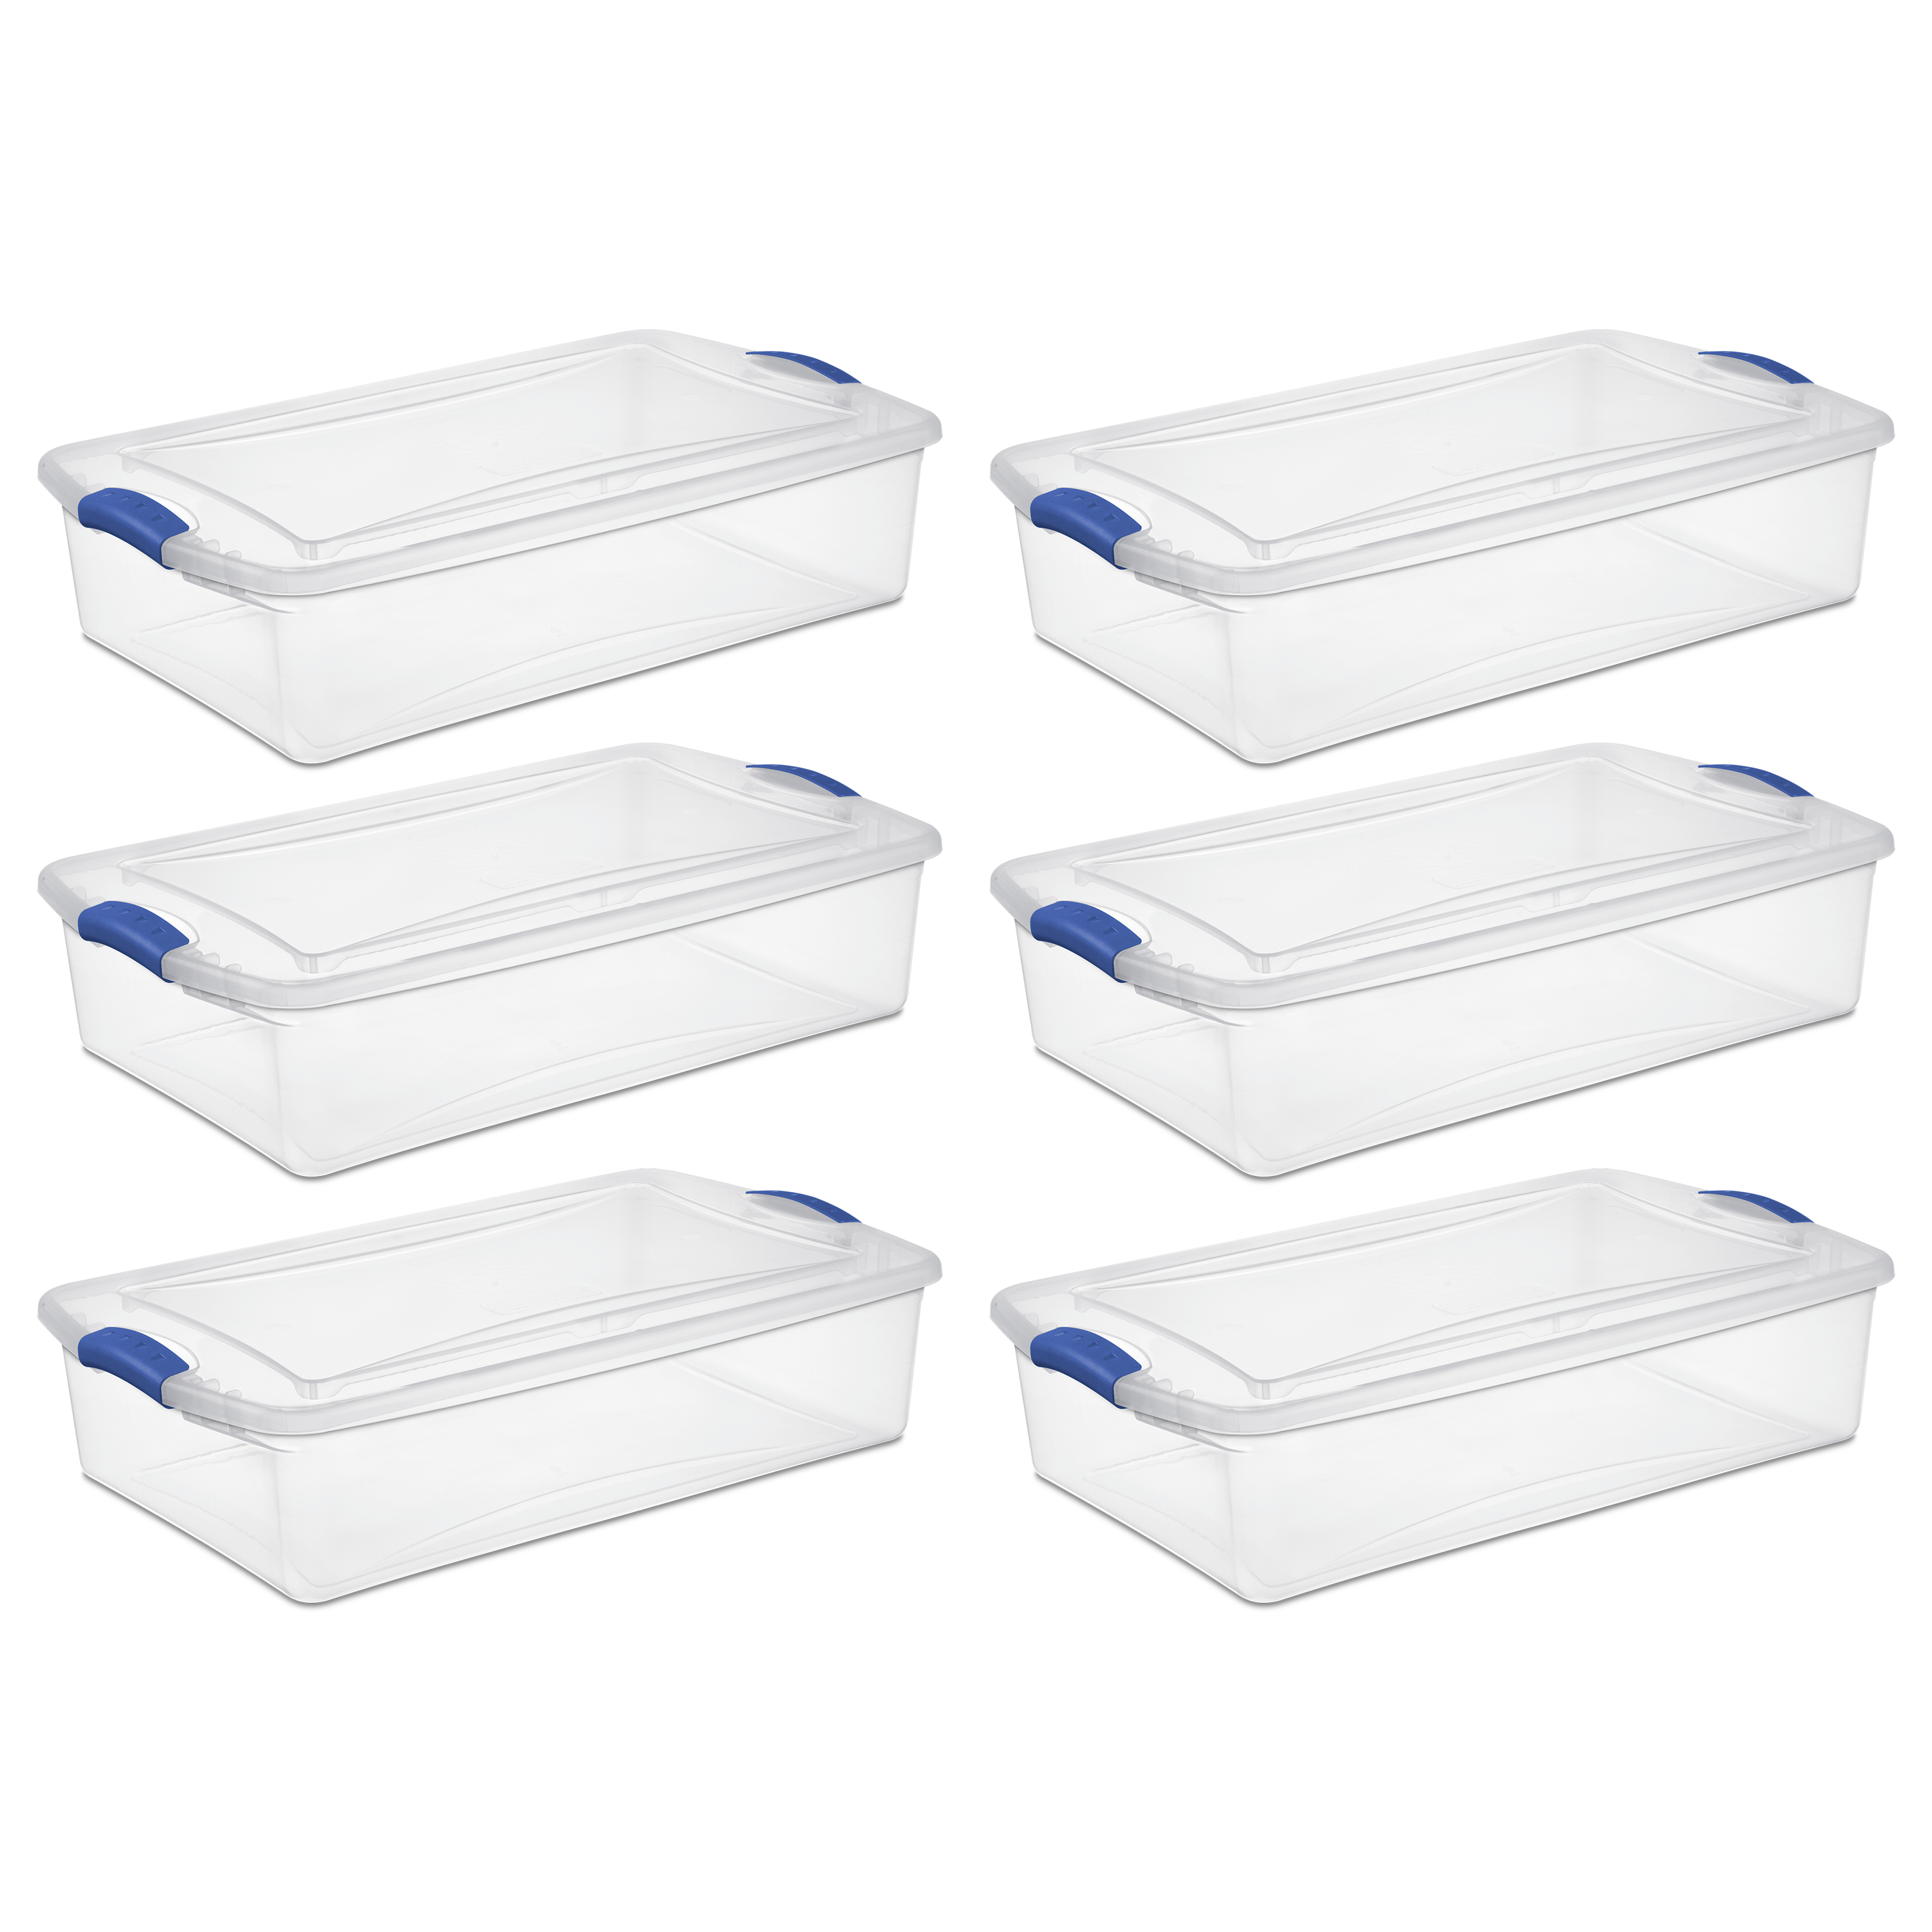 Sterilite 34 Qt Latch Box, Stadium Blue (Available in Case of 6 or Single Unit)